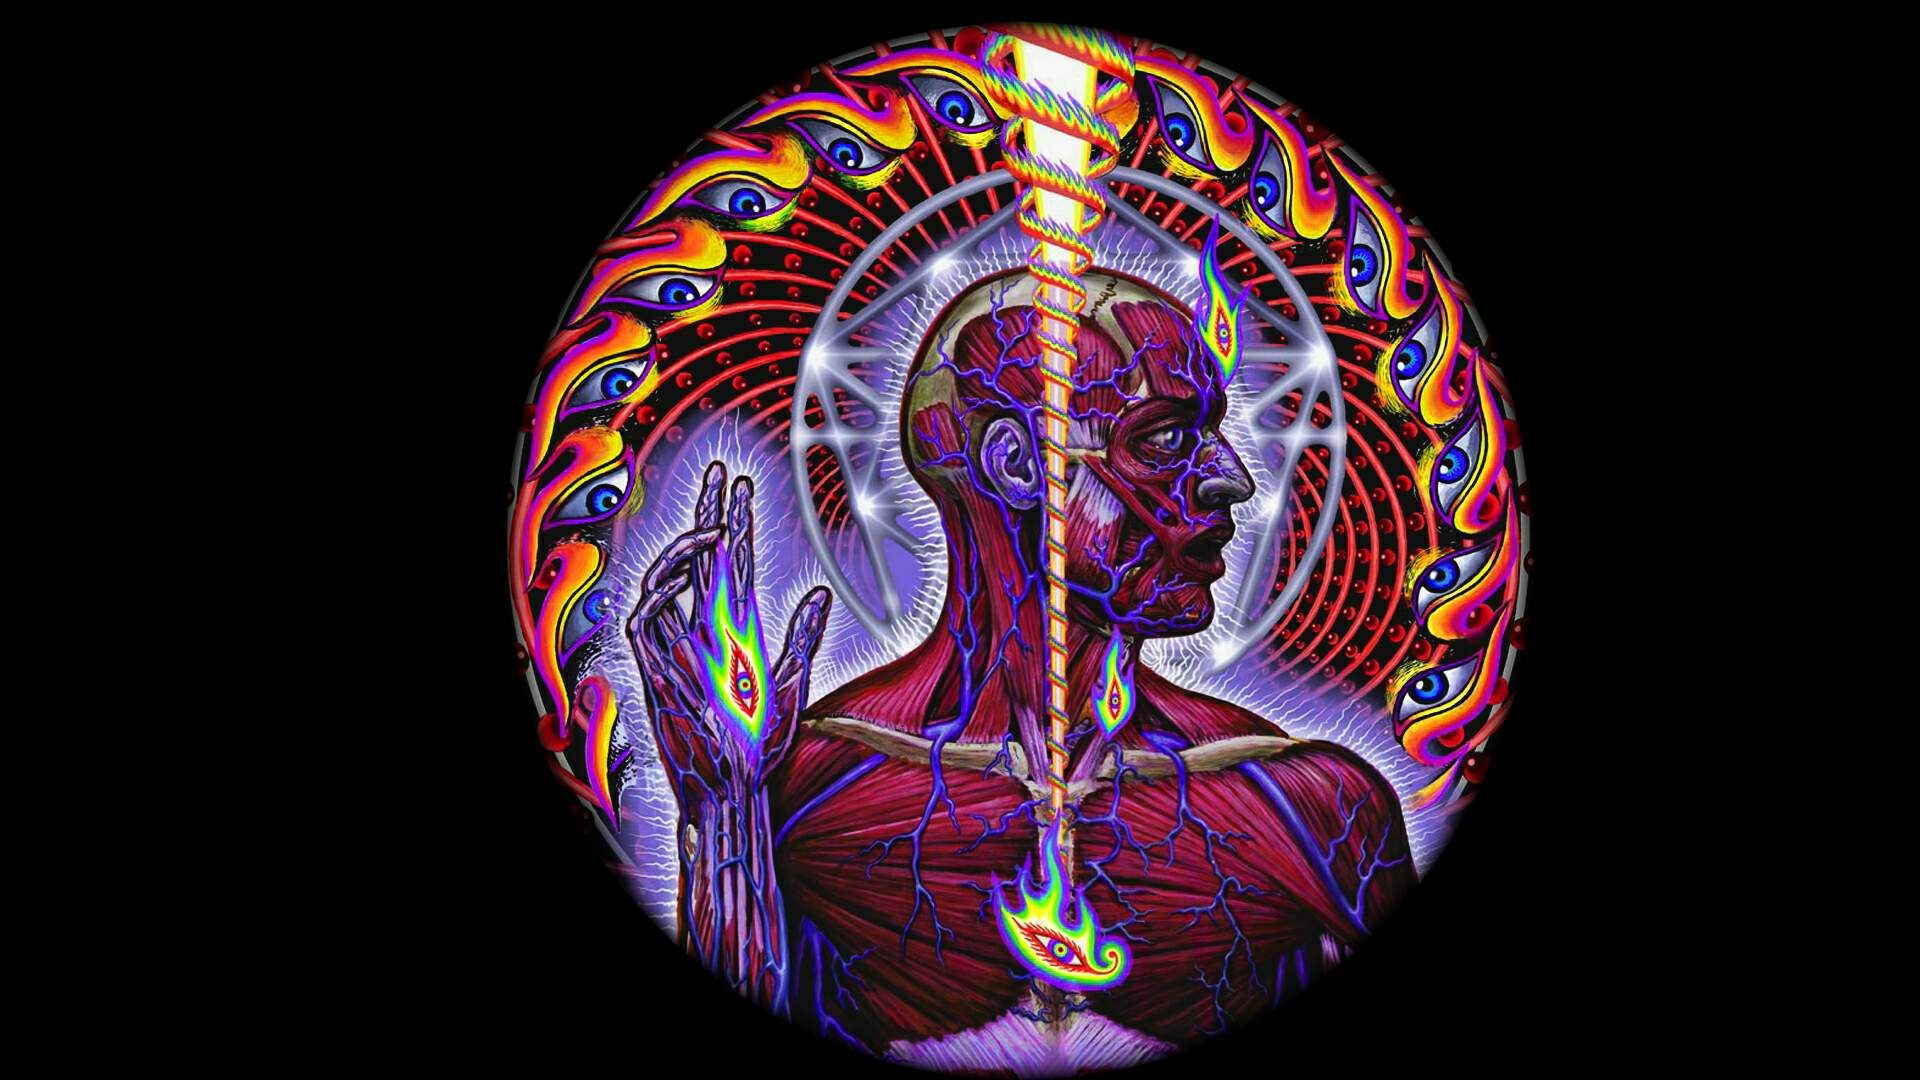 Psychedelic Wallpapers Backgrounds Wallpaper Abyss Psychedelic Artwork Psychedelic Art Music Artwork